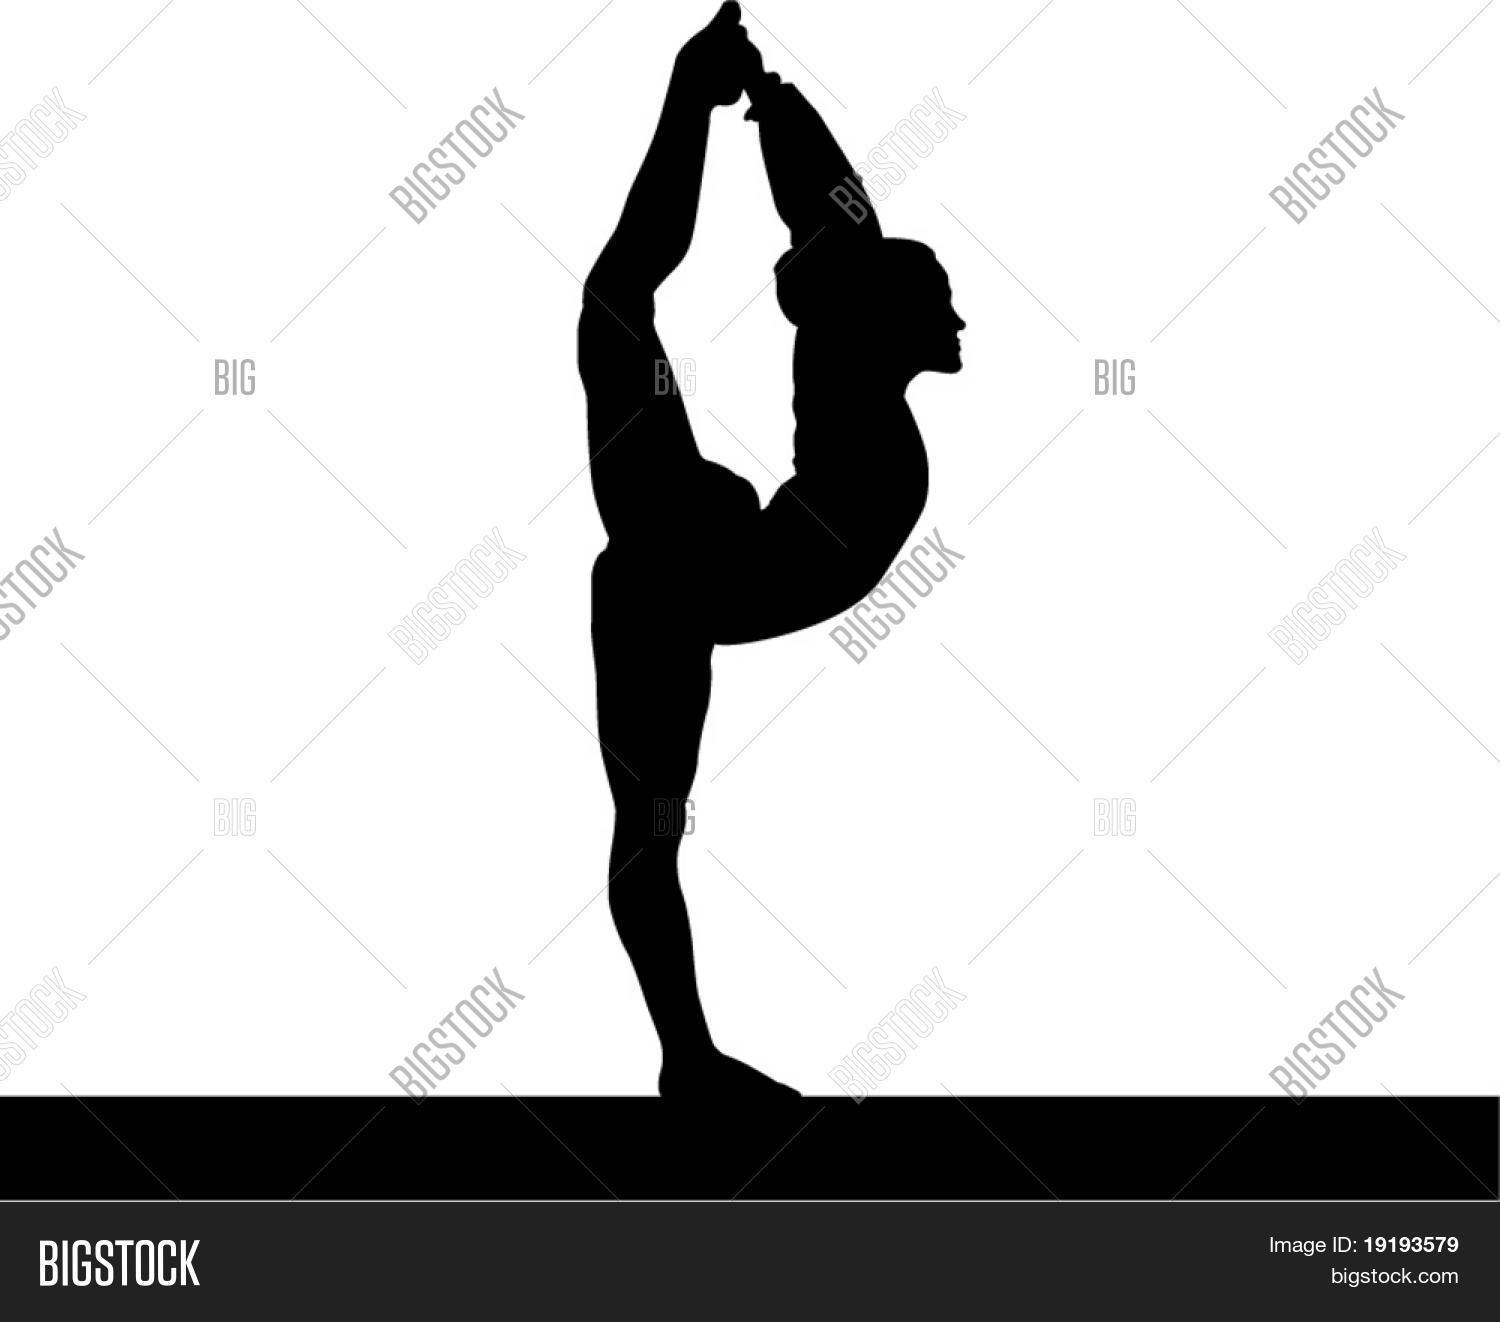 how to draw a girl doing the splits gymnastics express typical lesson plan splits draw how a the doing girl to